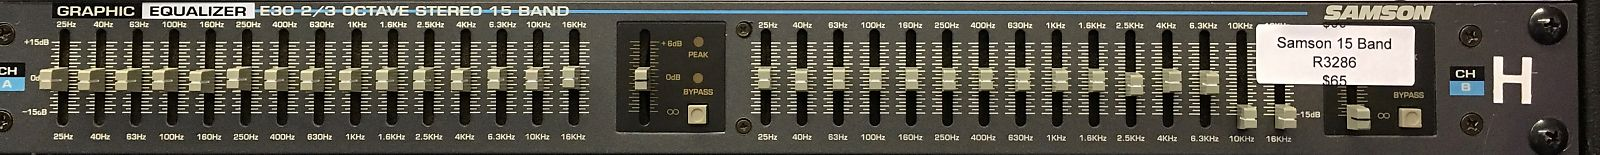 Samson E30 Vintage Rack Mount Graphic Equalizer